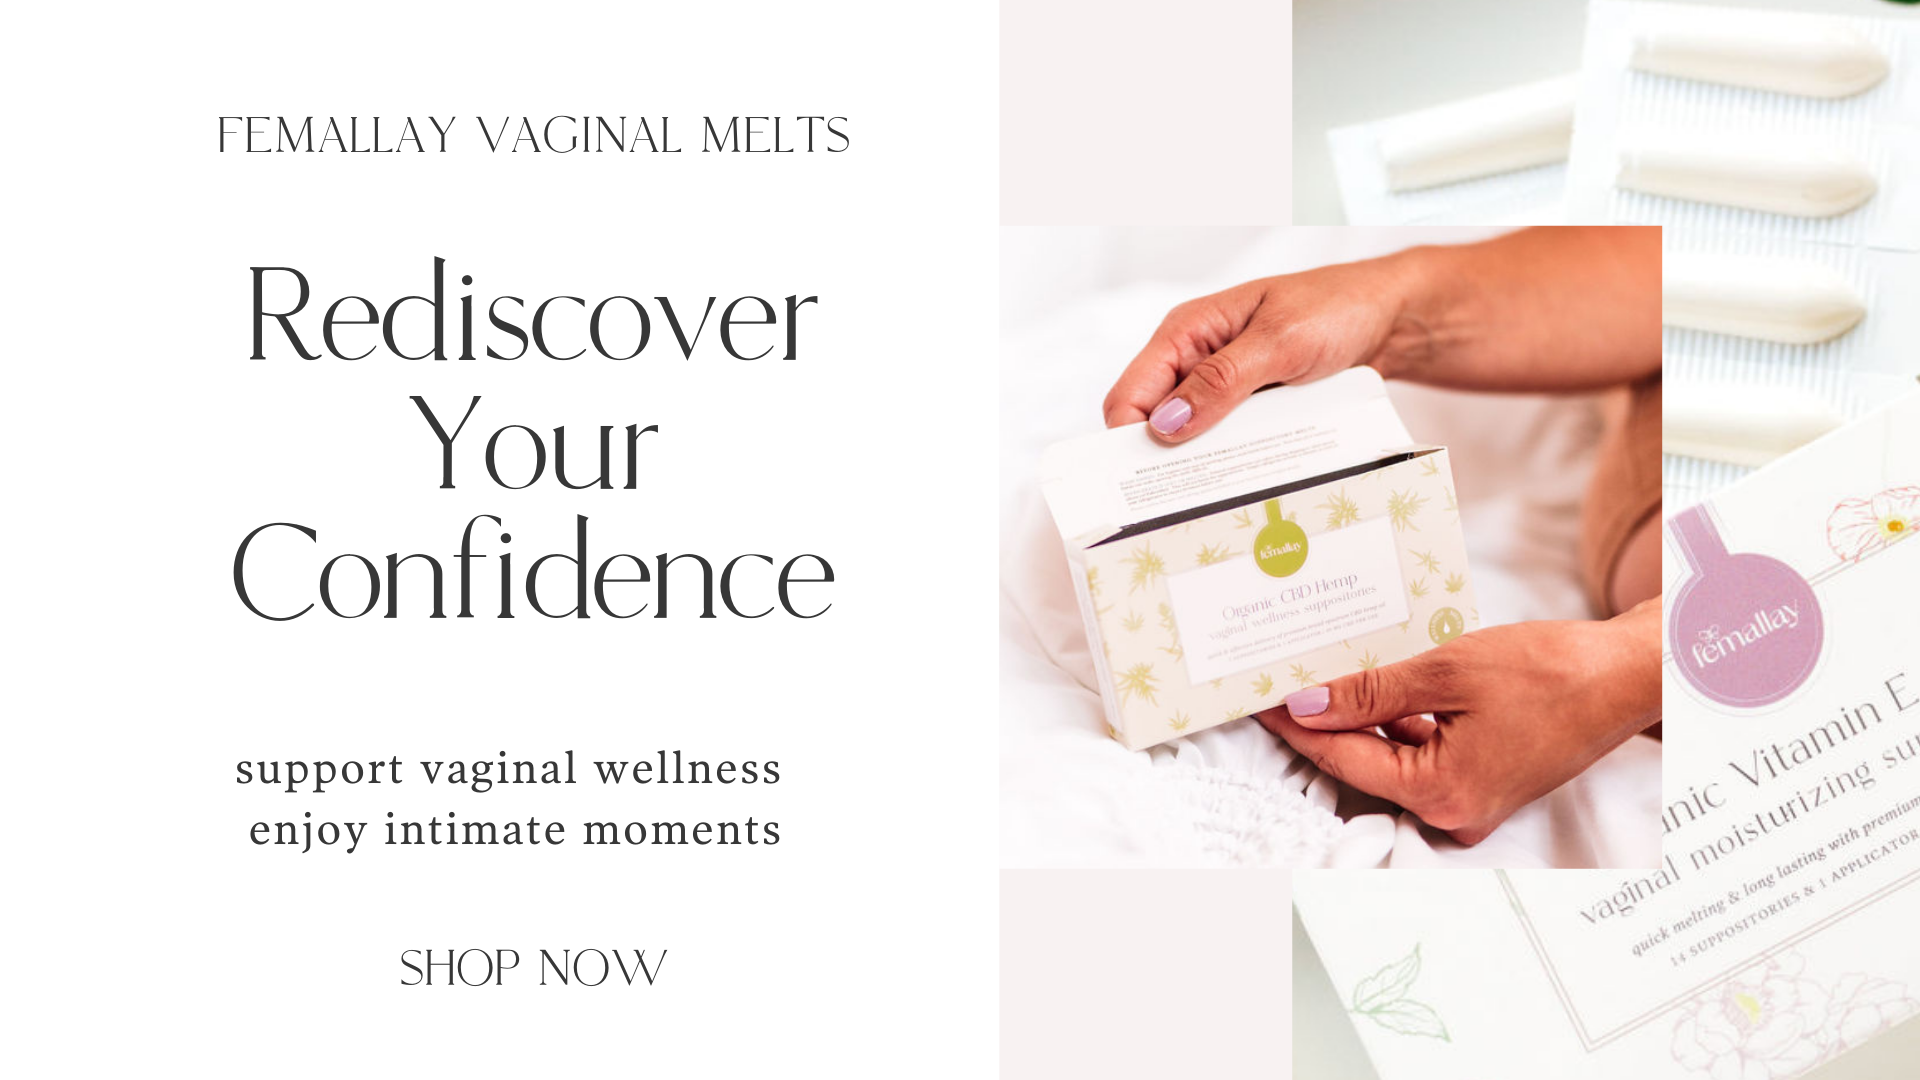 Vaginal suppositories promote sexual wellness in women